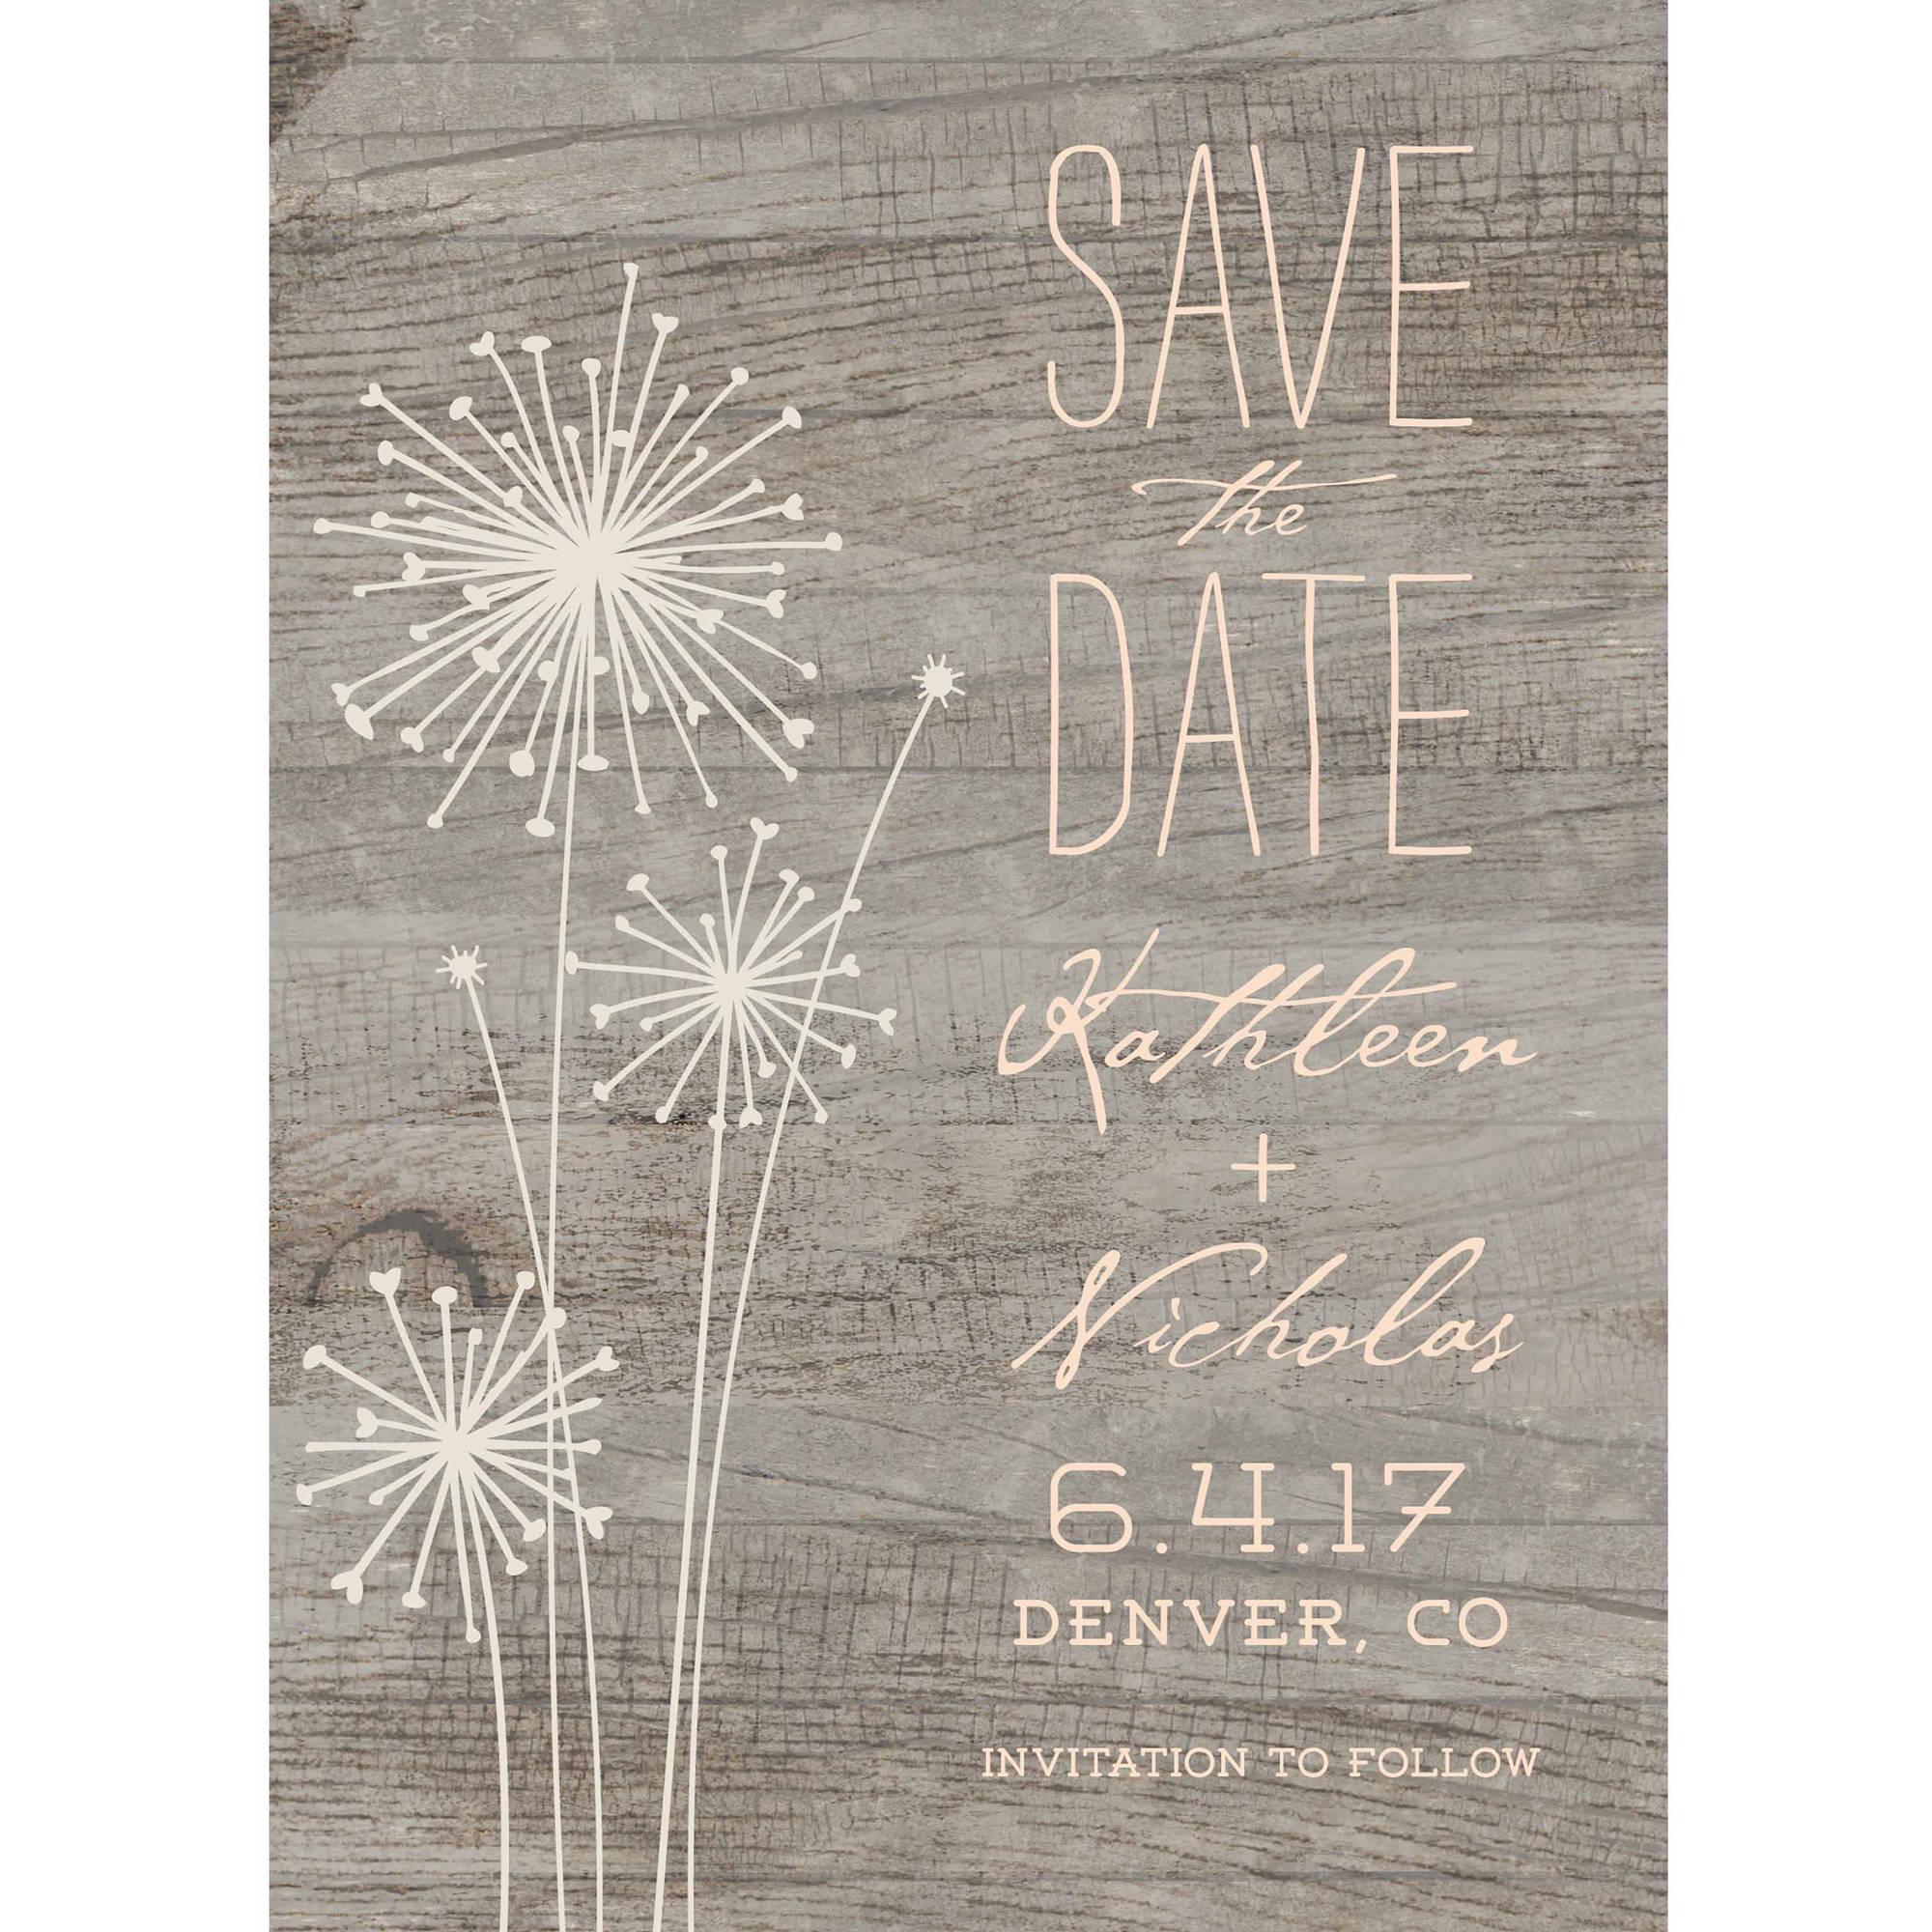 Rustic Dandelion Standard Save the Date